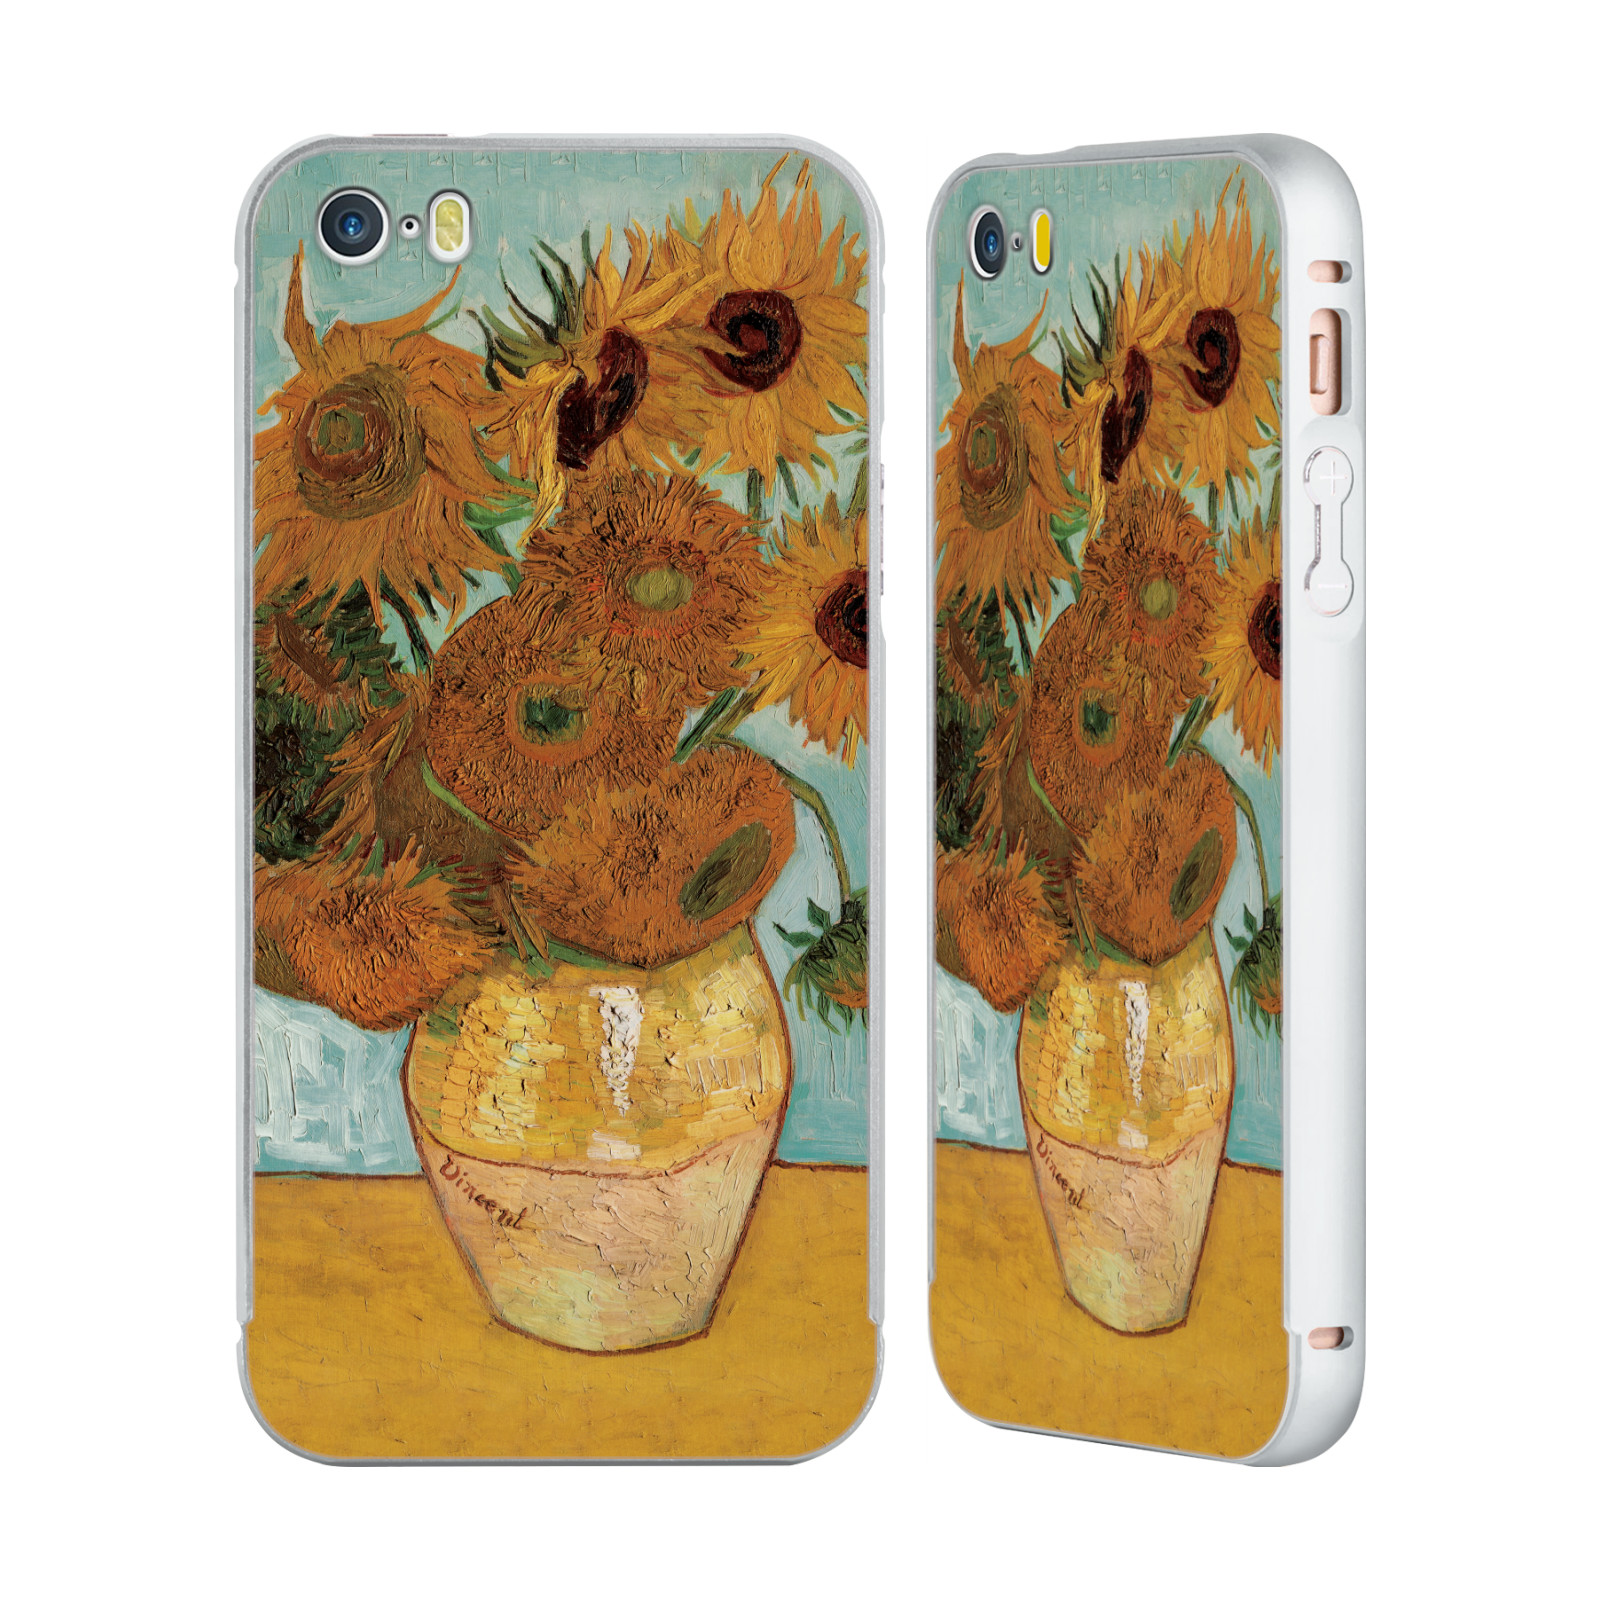 MASTERS-COLLECTION-PAINTINGS-1-SILVER-BUMPER-SLIDER-CASE-FOR-APPLE-iPHONE-PHONES